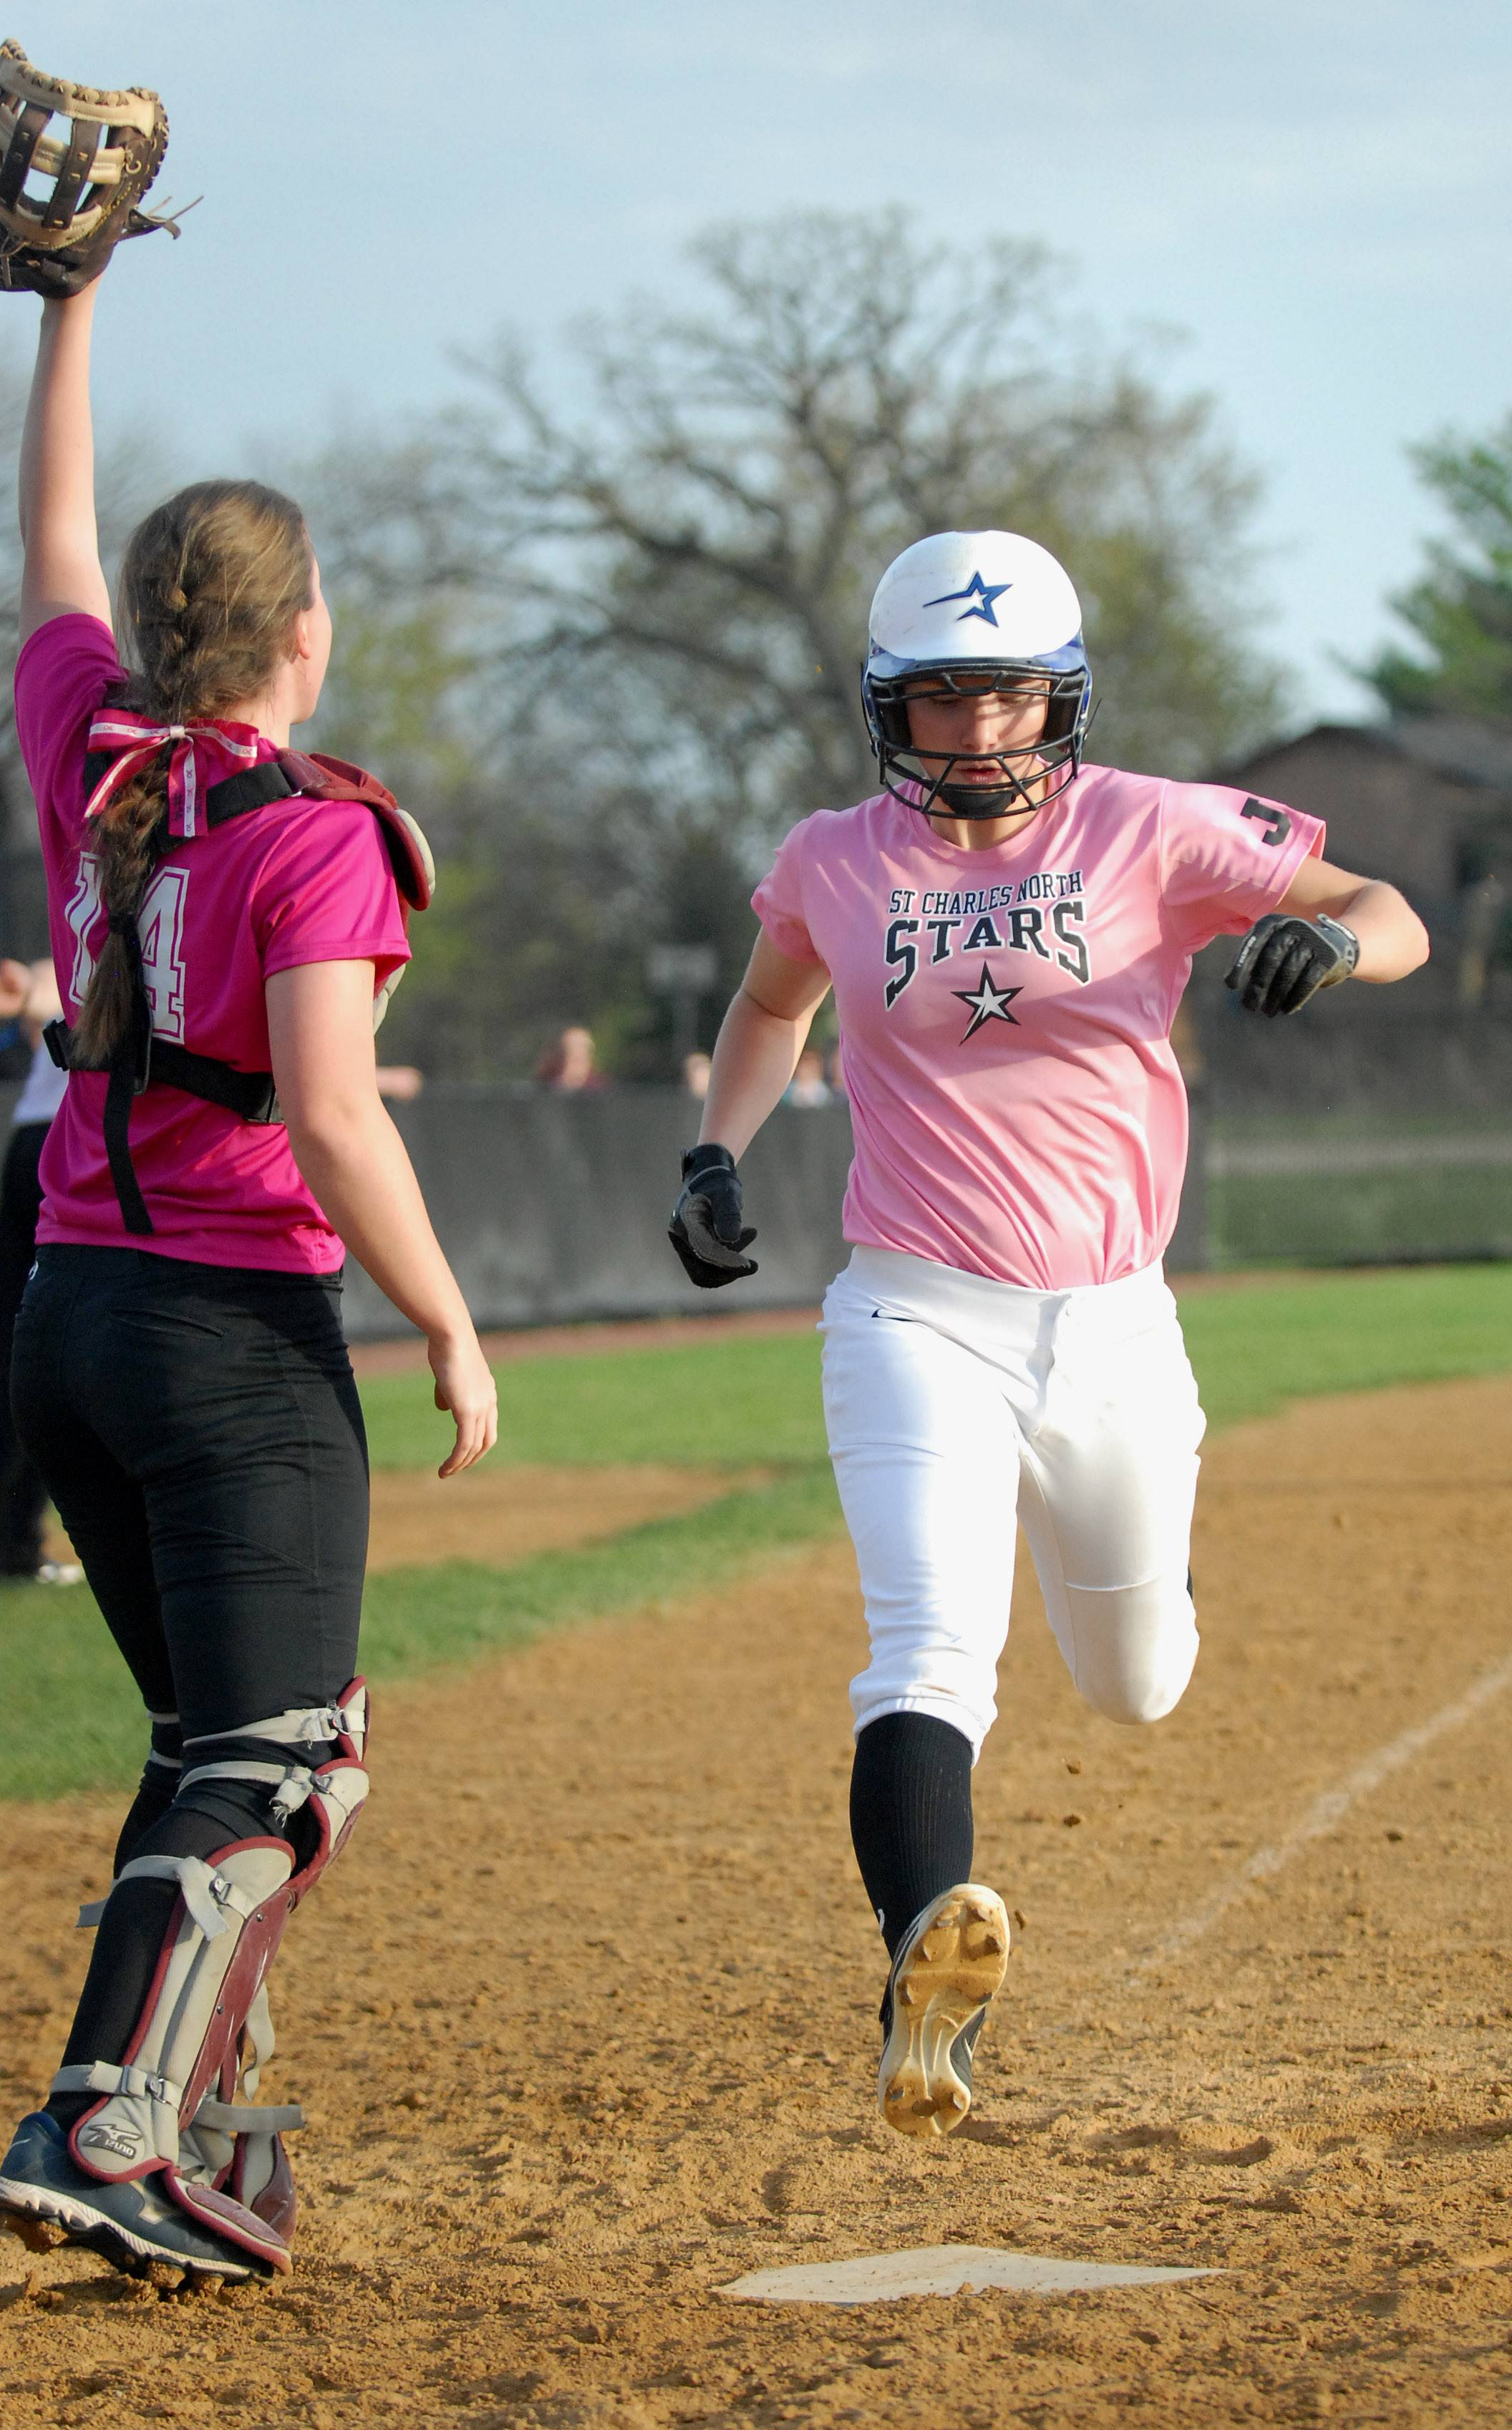 St. Charles North's Andrea Beal strides over home plate past Geneva catcher Kaitlyn Plocinski, bringing in a run for the North Stars in the fourth inning on Wednesday, May 7.